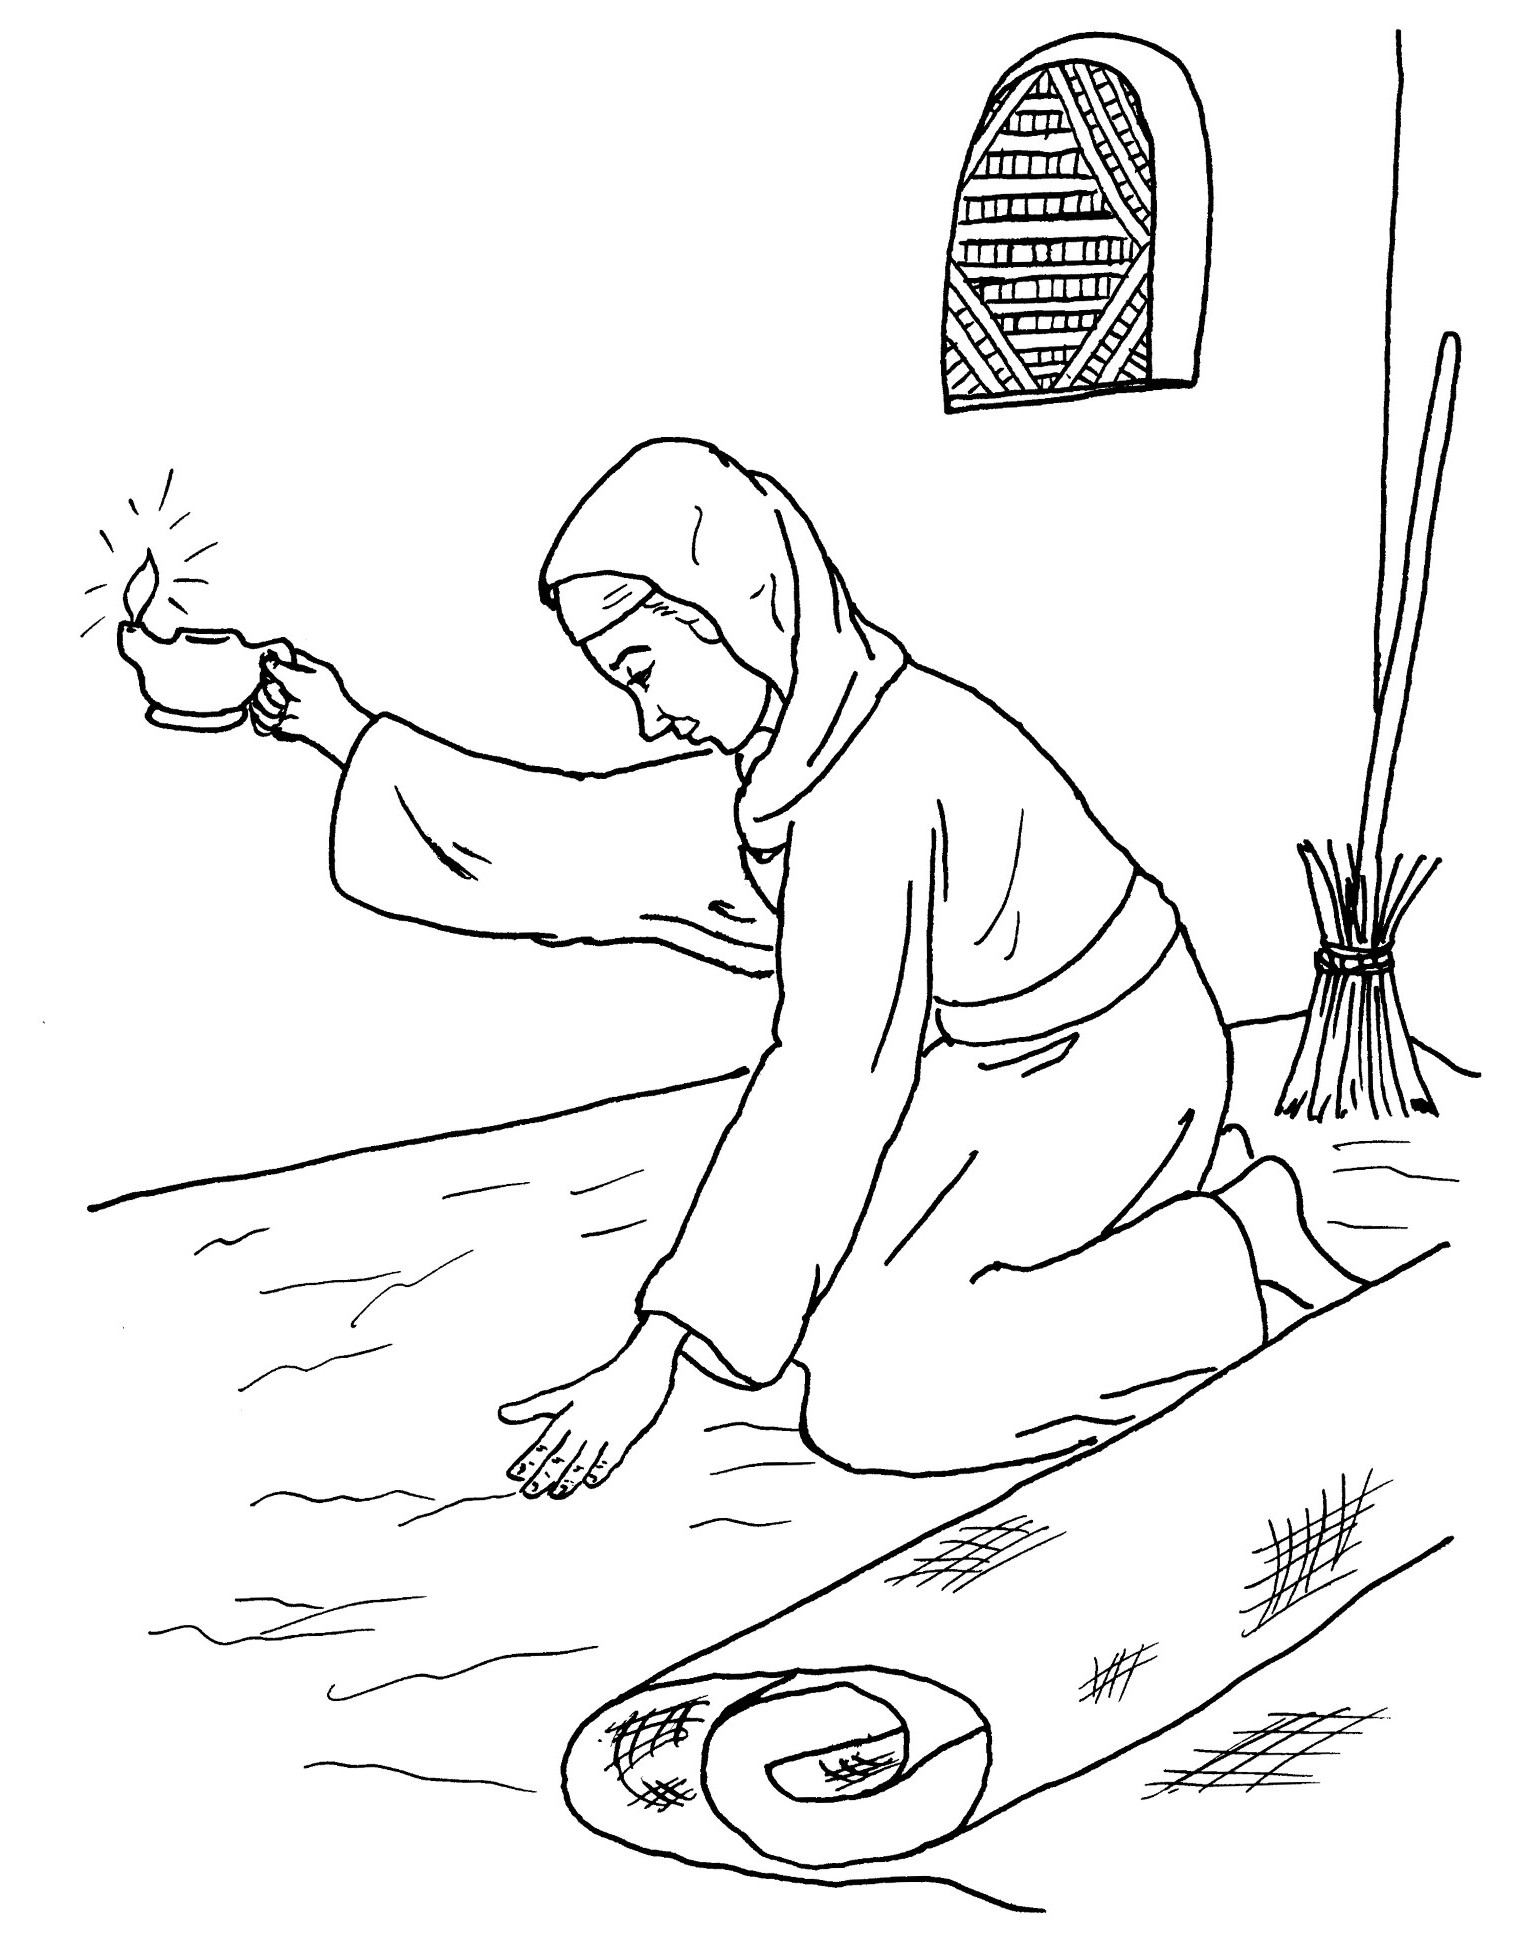 parables coloring pages - photo#19